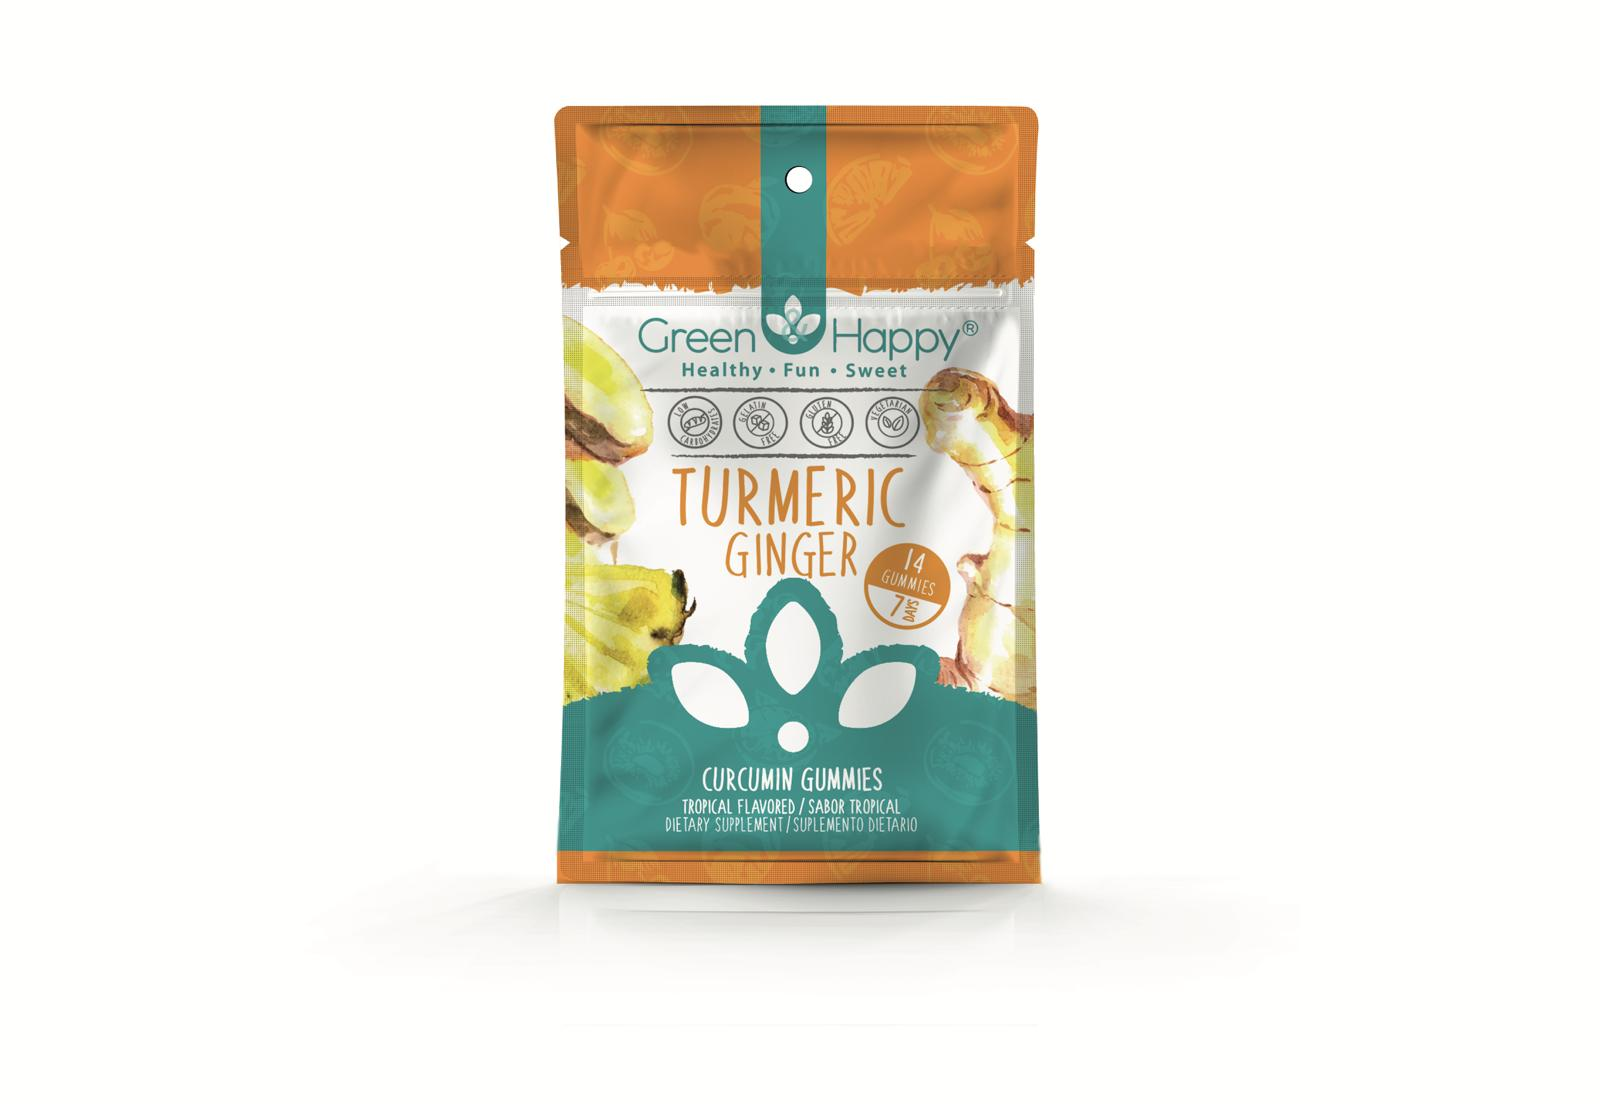 Green and Happy Curcumin and Ginger turmeric gummies